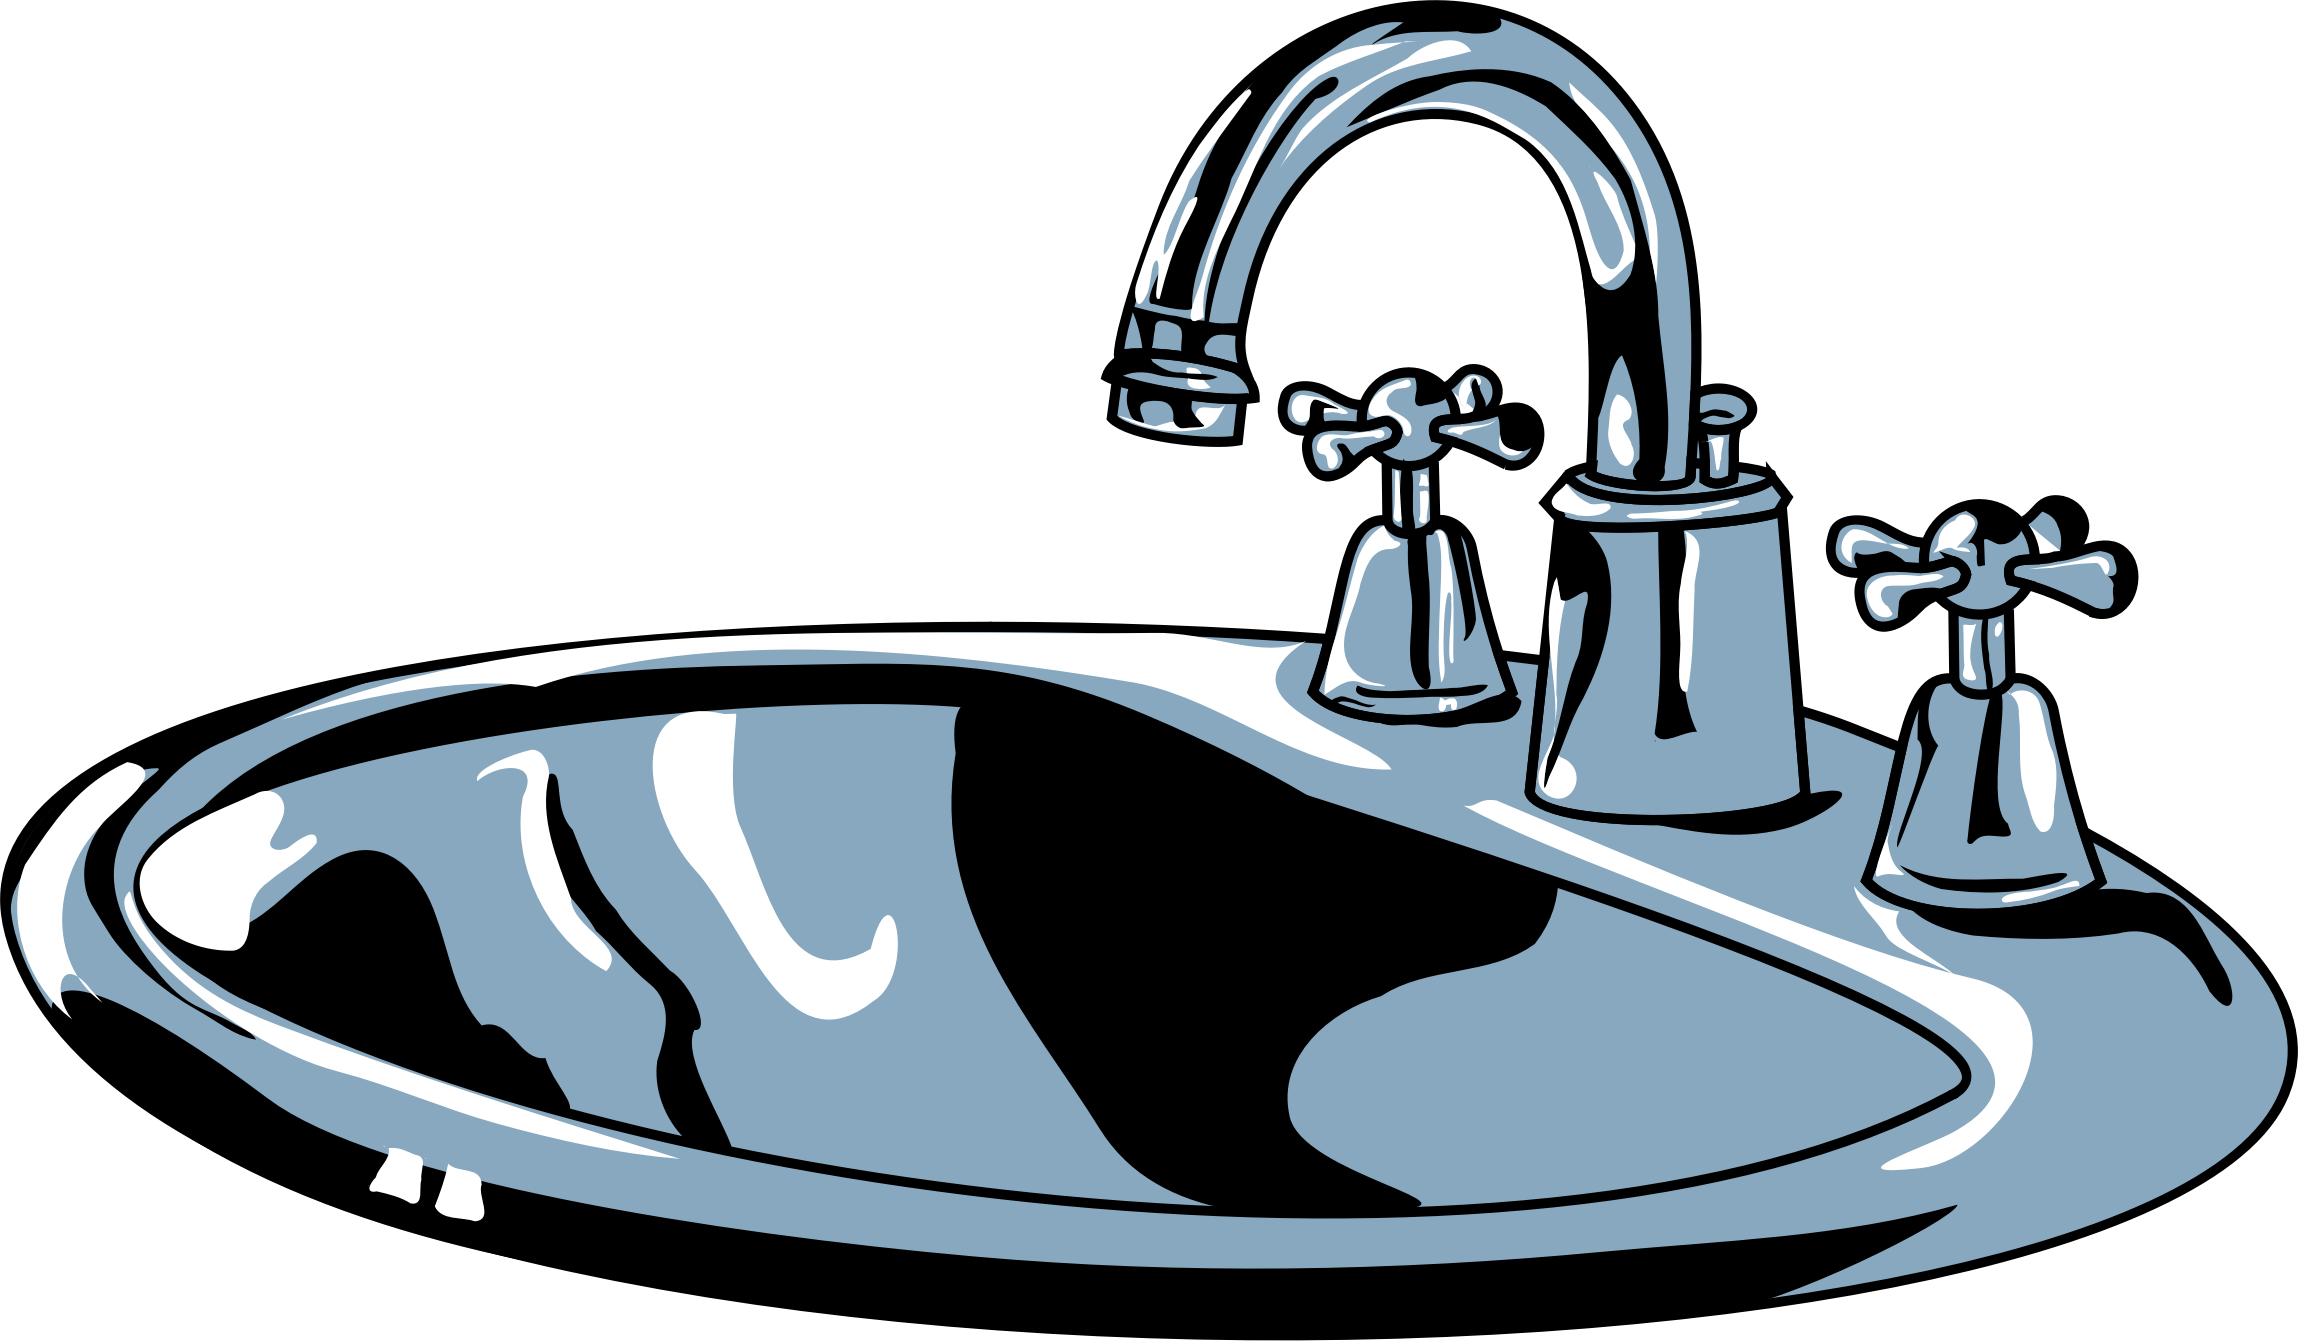 Sink vector. Clipart clipground